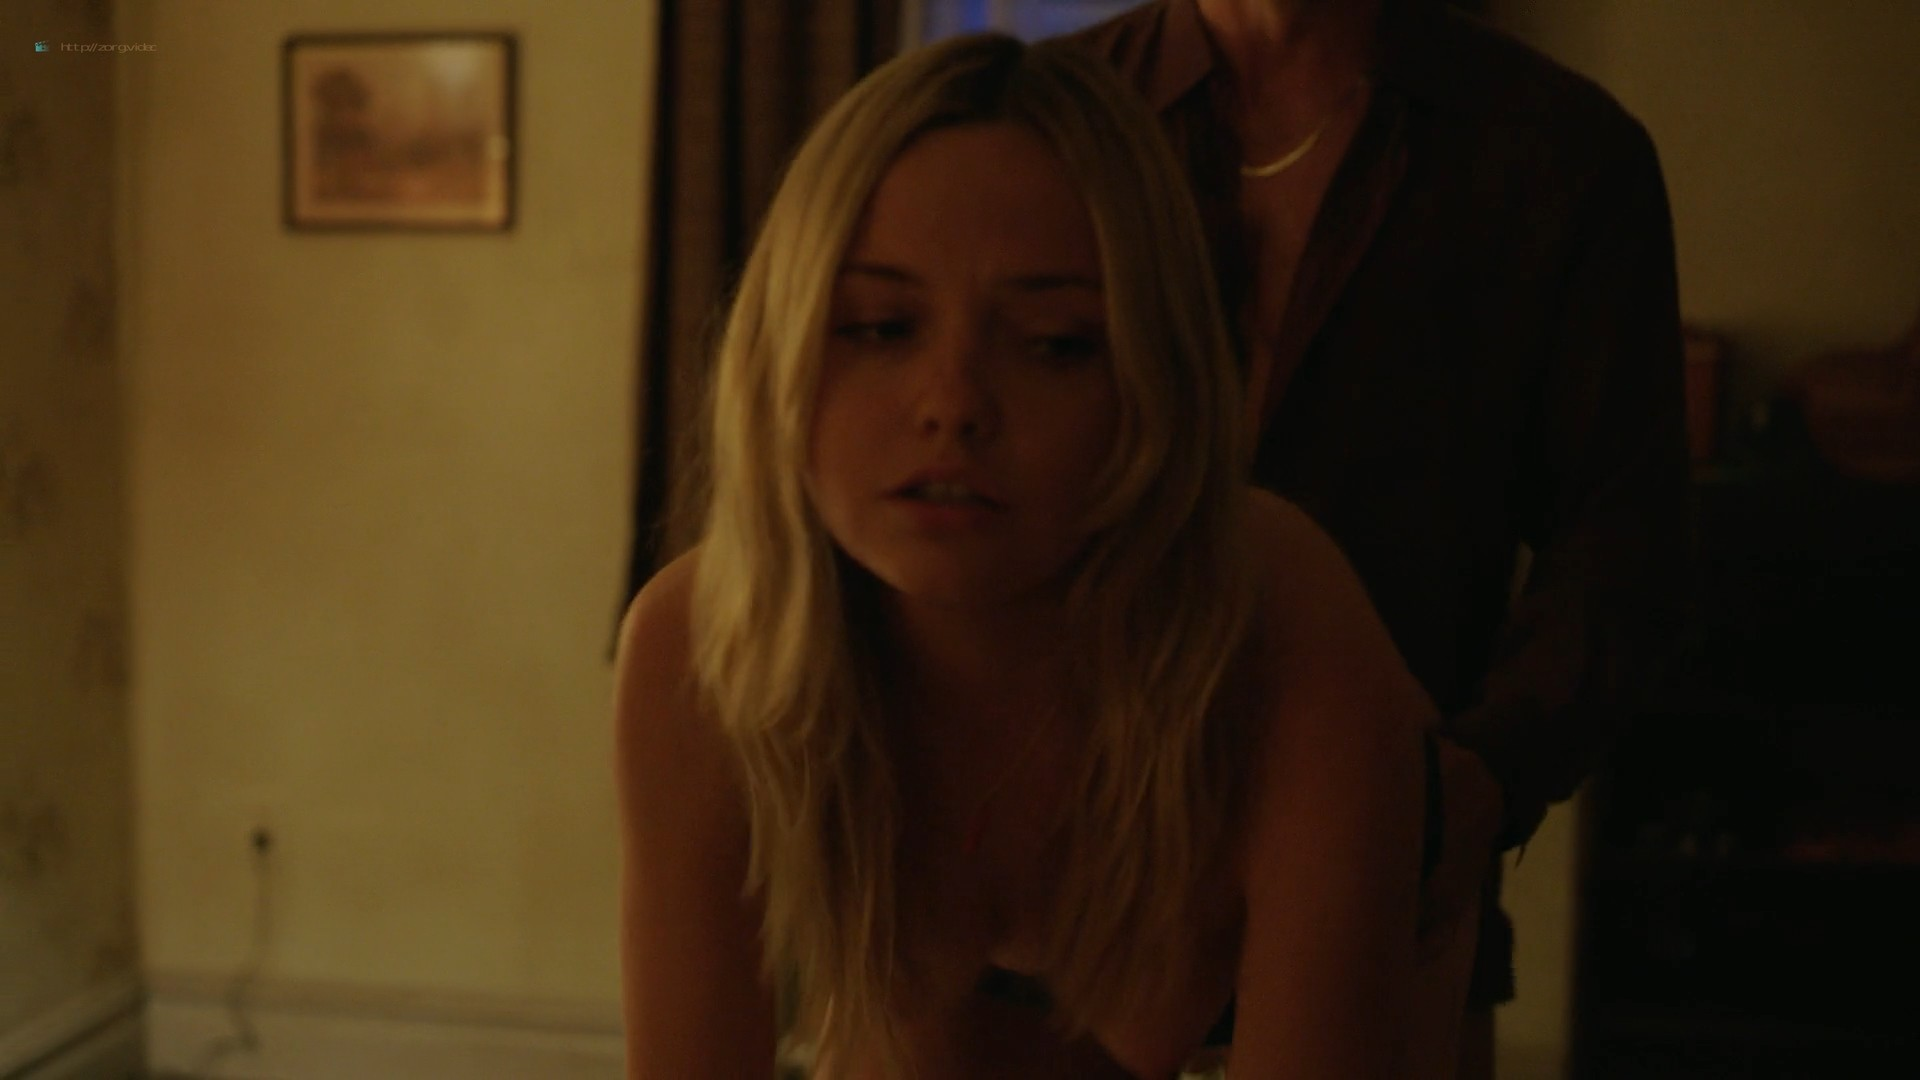 Emily Meade nude sex doggy style - The Deuce (2019) s3e7 1080p (5)